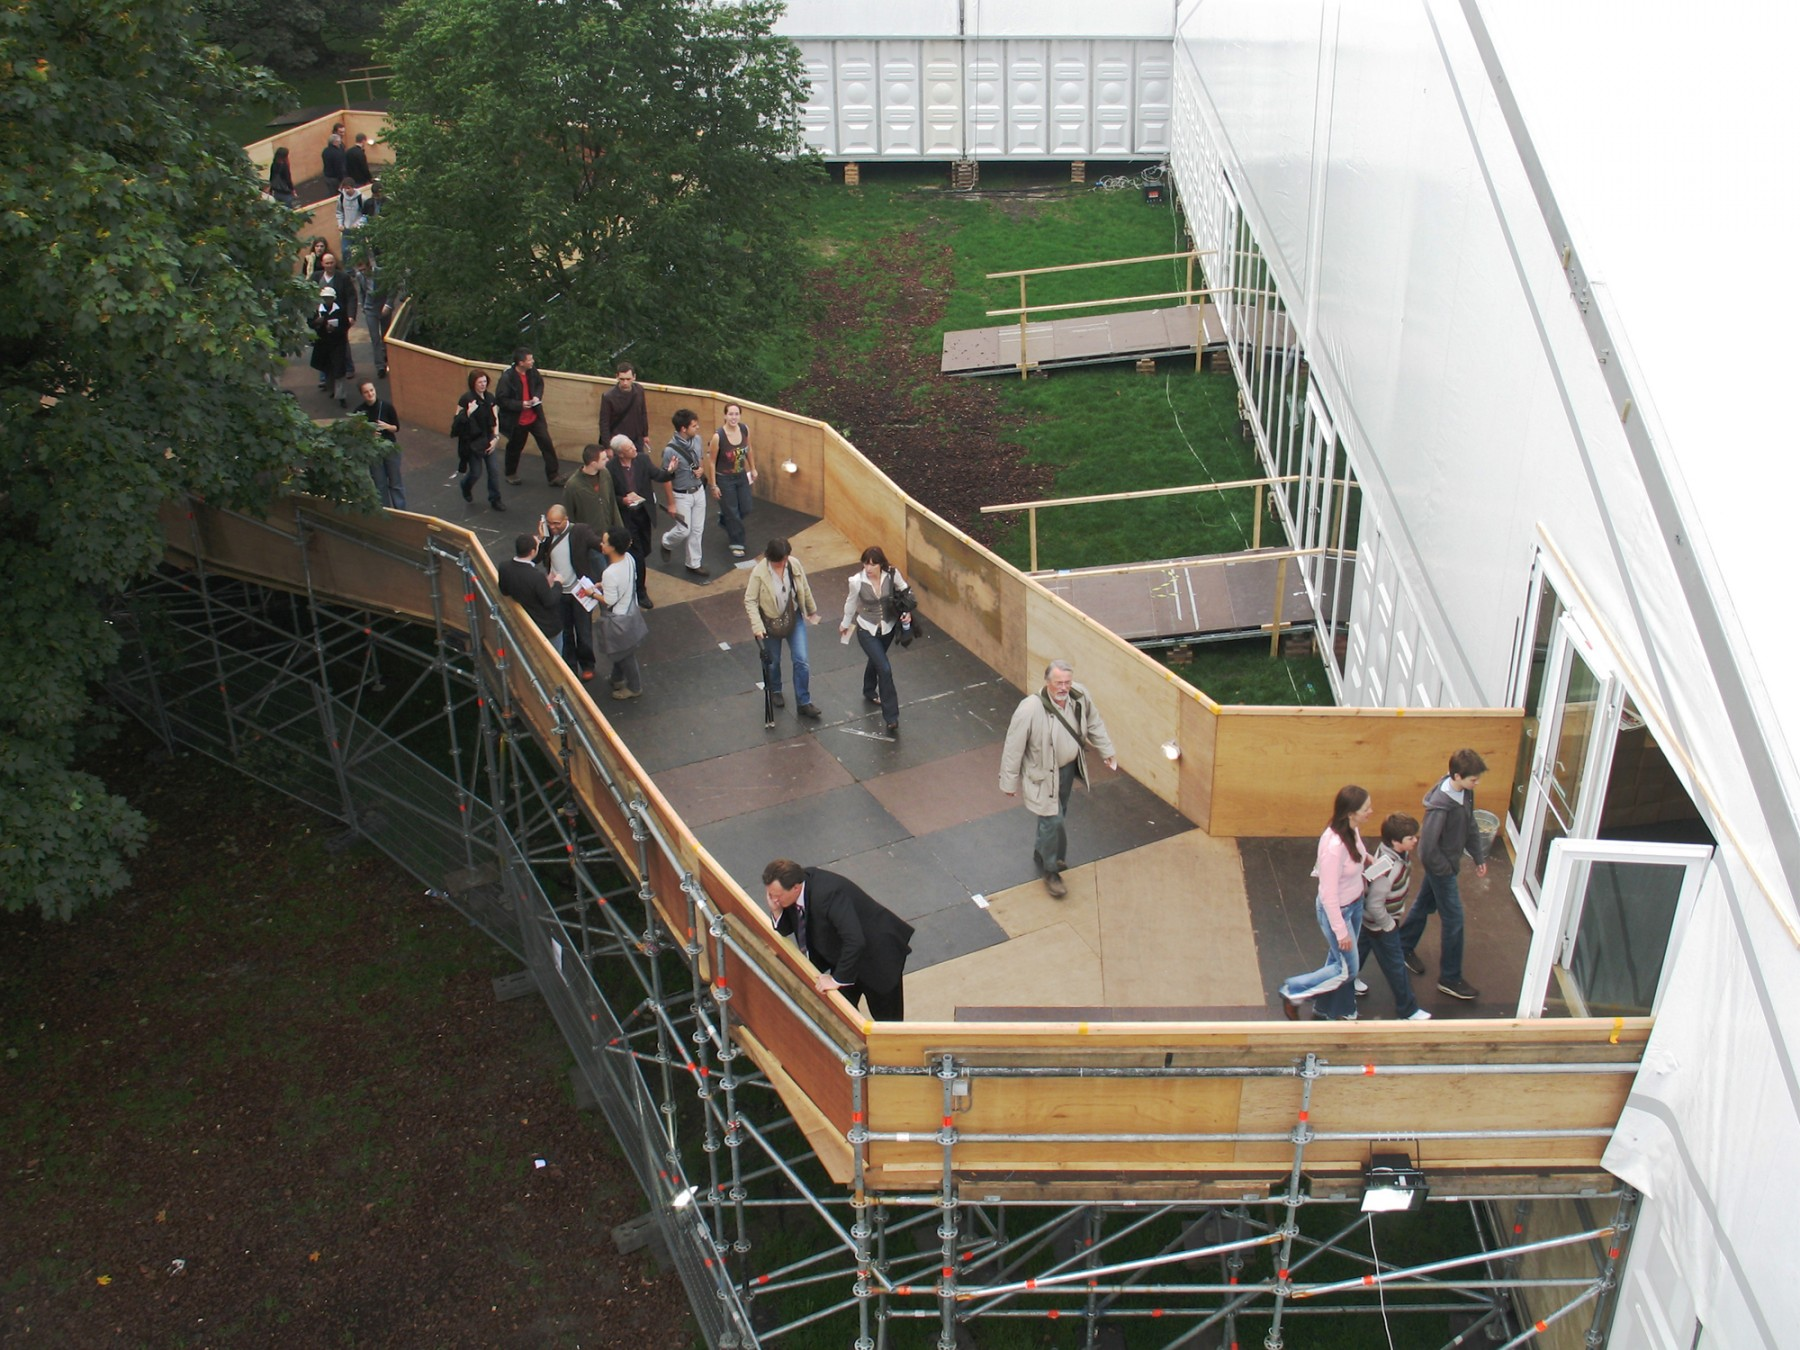 Jamie-Fobert-Architects Frieze-Art-Fair-scaffold-ramp-entrance-temporary structure-regents-park